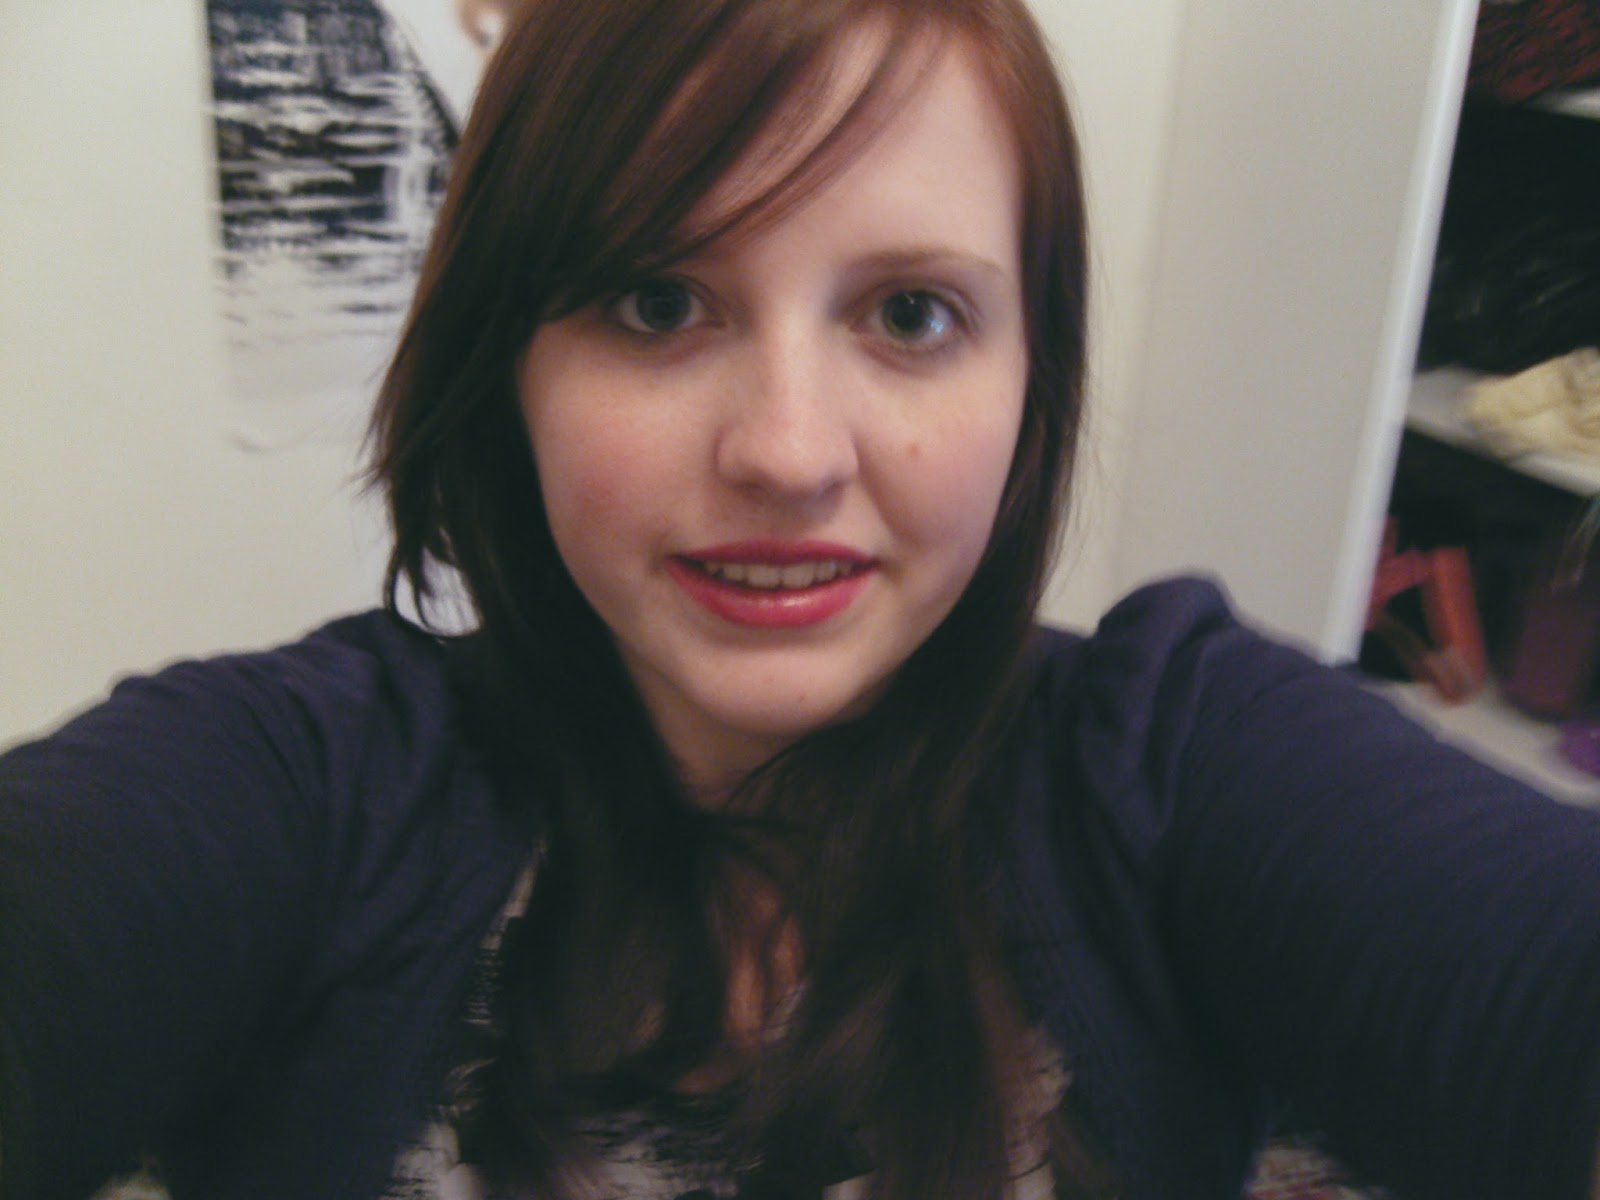 Photo of Sarah in 2008, aged 20. She has Brown hair that is past her shoulders and is wearing a grey t-shirt with blue cardigan